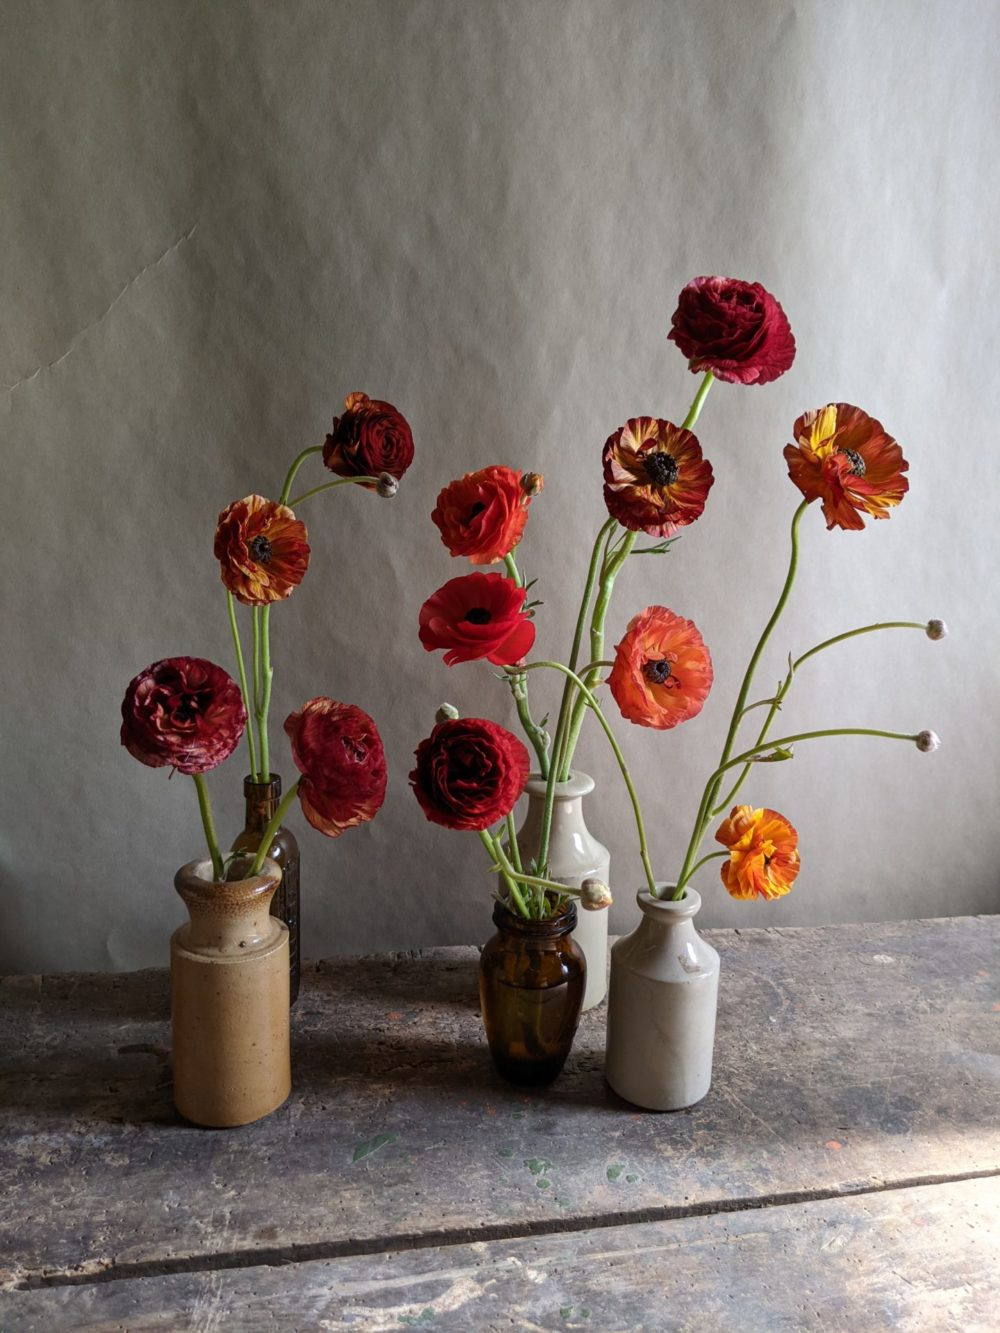 These fiery ranunculus are a great example of colour variation within the same variety